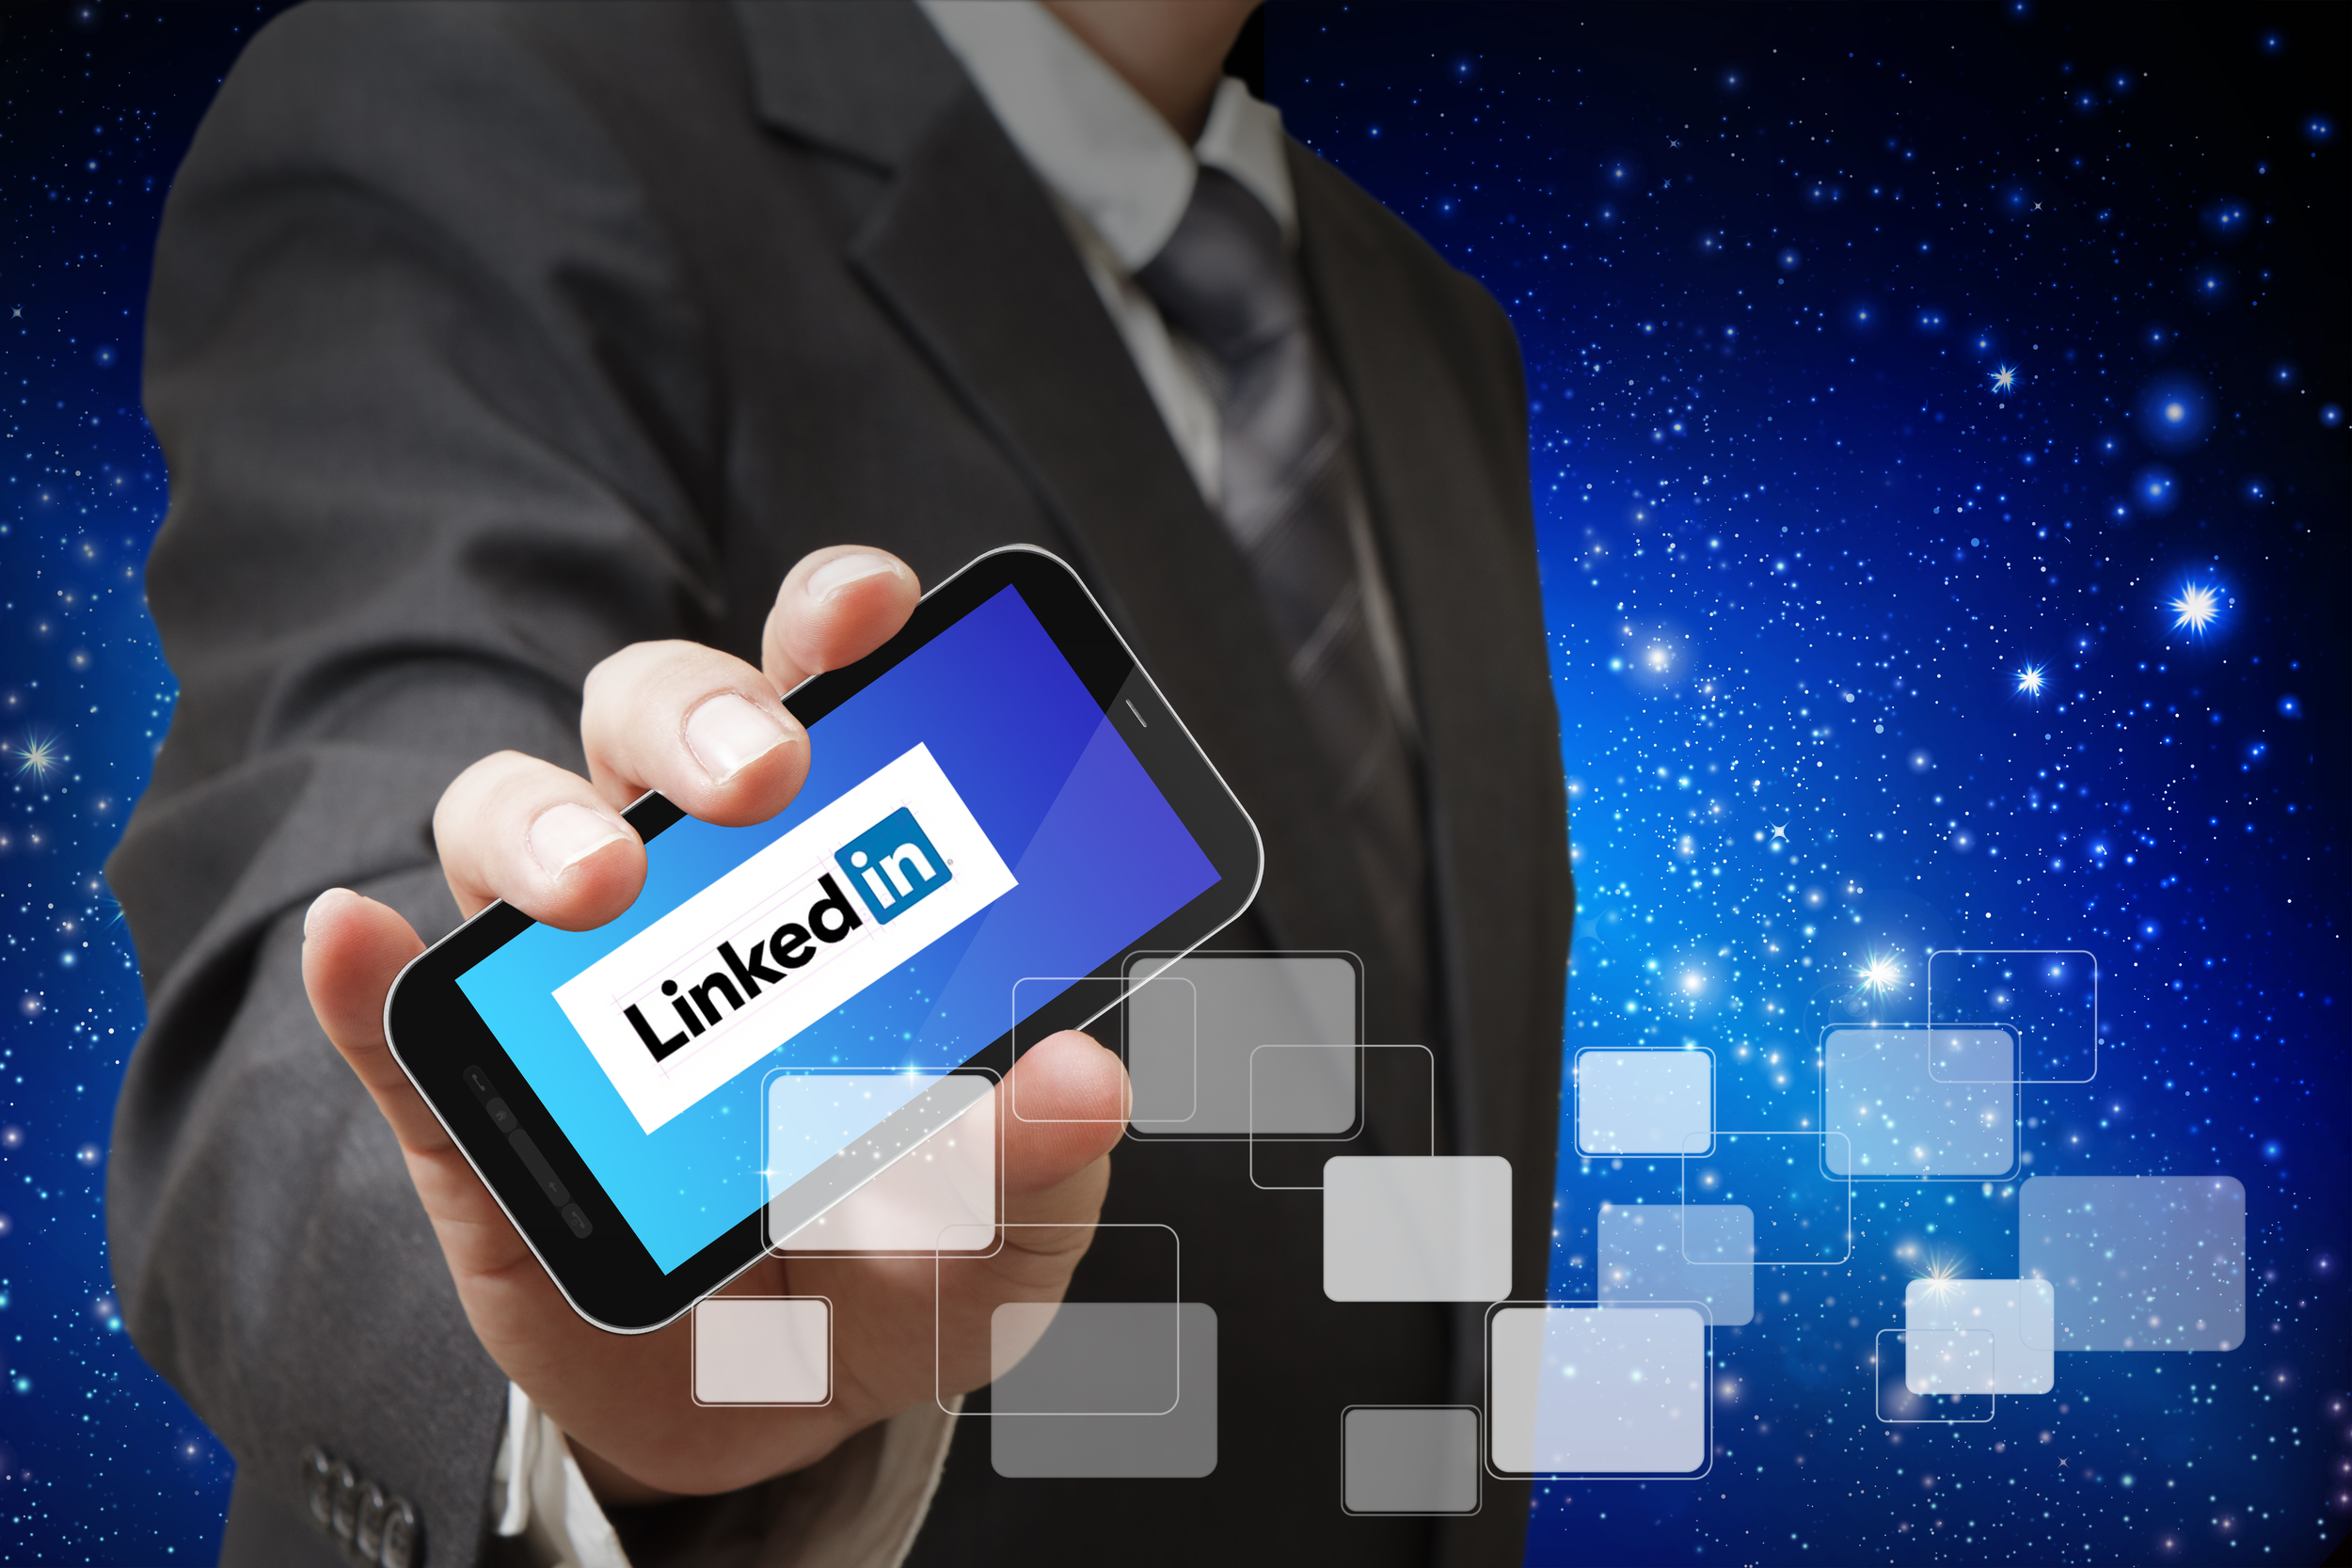 how funeral directors can use linkedin to build reputation and visibilty